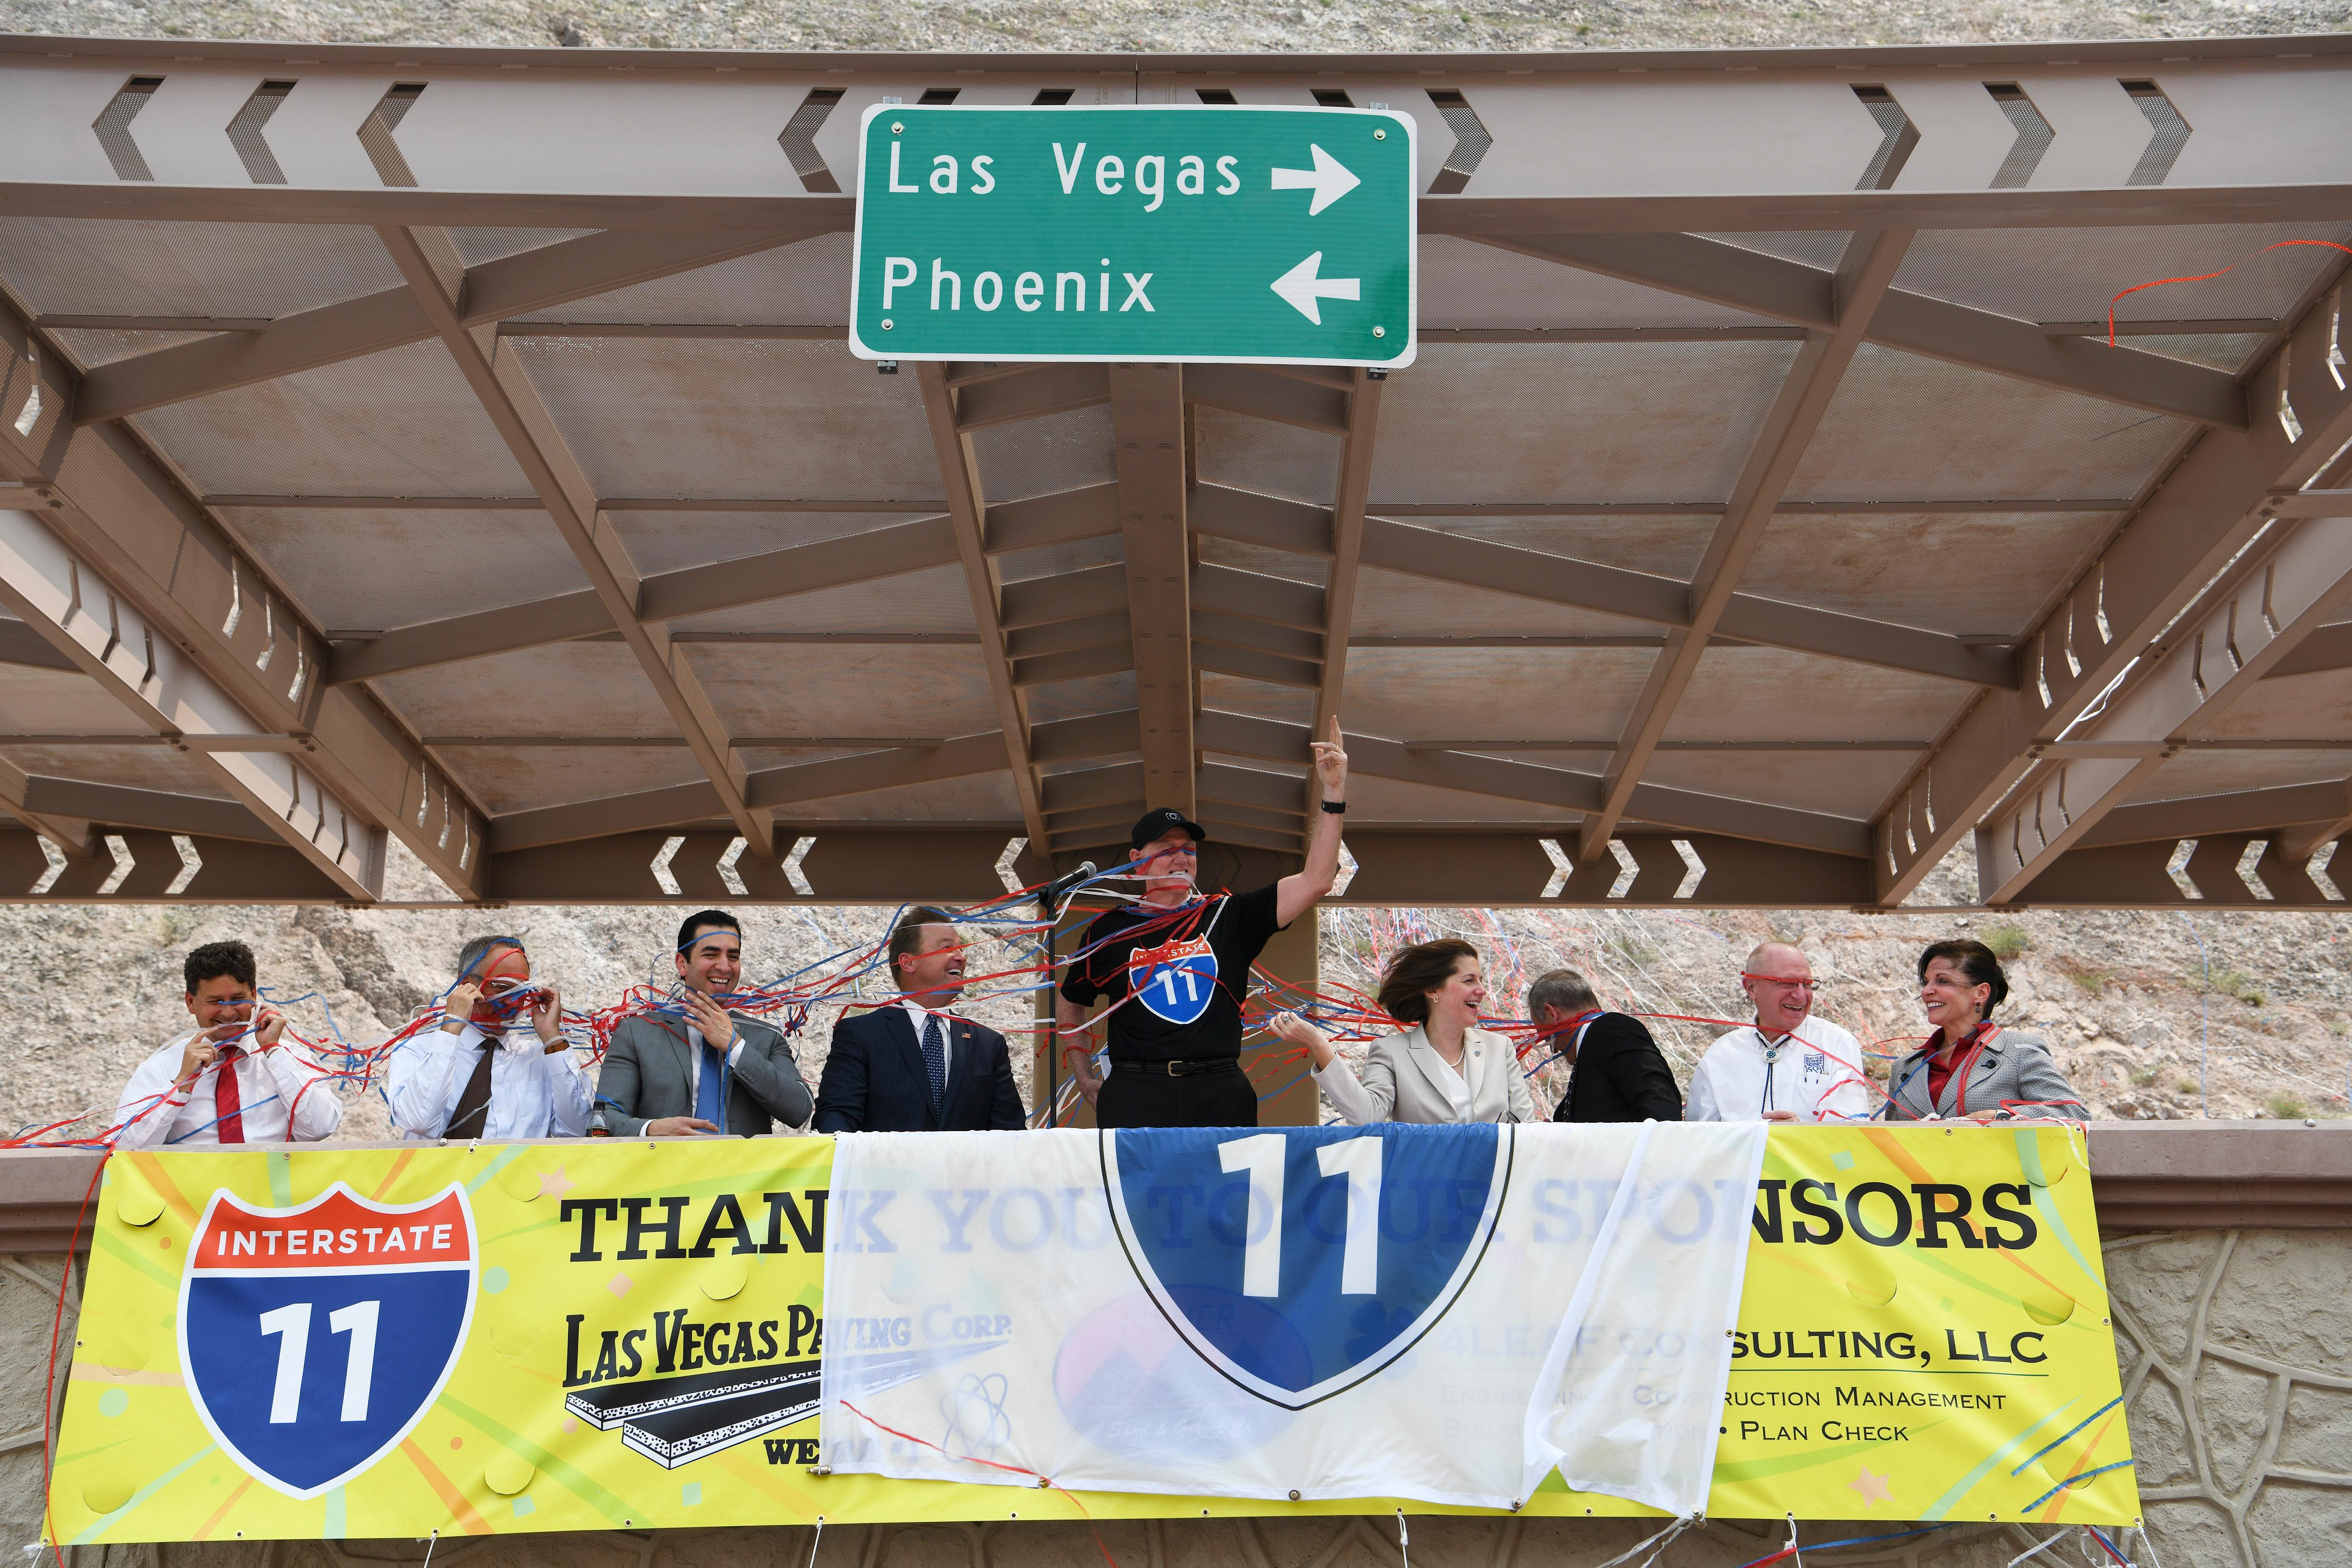 Elected officials and dignitaries get caught up in celebratory streamers during the grand opening of a new section of Interstate 11 Thursday, August 9, 2018, in Boulder City. From left are Boulder City Mayor Rod Woodbury, Clark County Commissioner Jim Gibson, Rep. Ruben Kihuen, D-Nev., Sen. Dean Heller, R-Nev., Clark County Commissioner Larry Brown, Sen. Catherine Cortez Masto, D-Nev., Federal Highway Administration Director of Field Services West Peter Osborn, Nevada State Sen. Joe Hardy, and Las Vegas Chamber of Commerce President Mary Beth Sewald. The section, also referred to as the Boulder City Bypass, marks the official start of the I-11 project between Las Vegas and Phoenix. CREDIT: Sam Morris/Las Vegas News Bureau